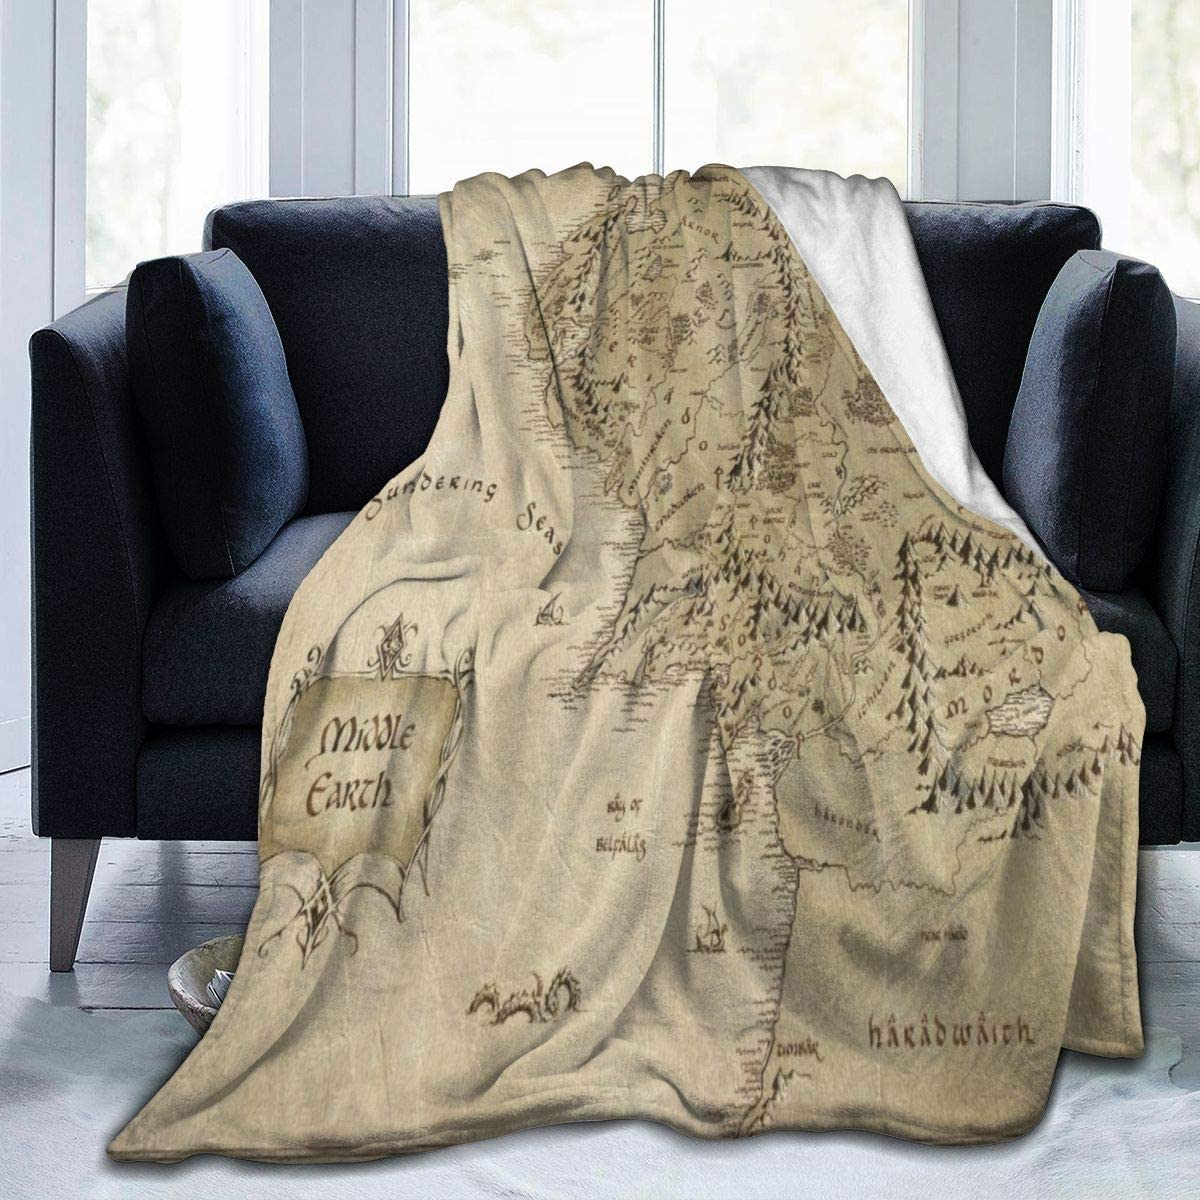 Blanket Middle Earth Map Throw Blanket Ultra Soft Velvet Blanket Lightweight Bed Blanket Quilt Durable Home Decor Fleece Blanket Sofa Blanket Luxurious Carpet for Men Women Kids